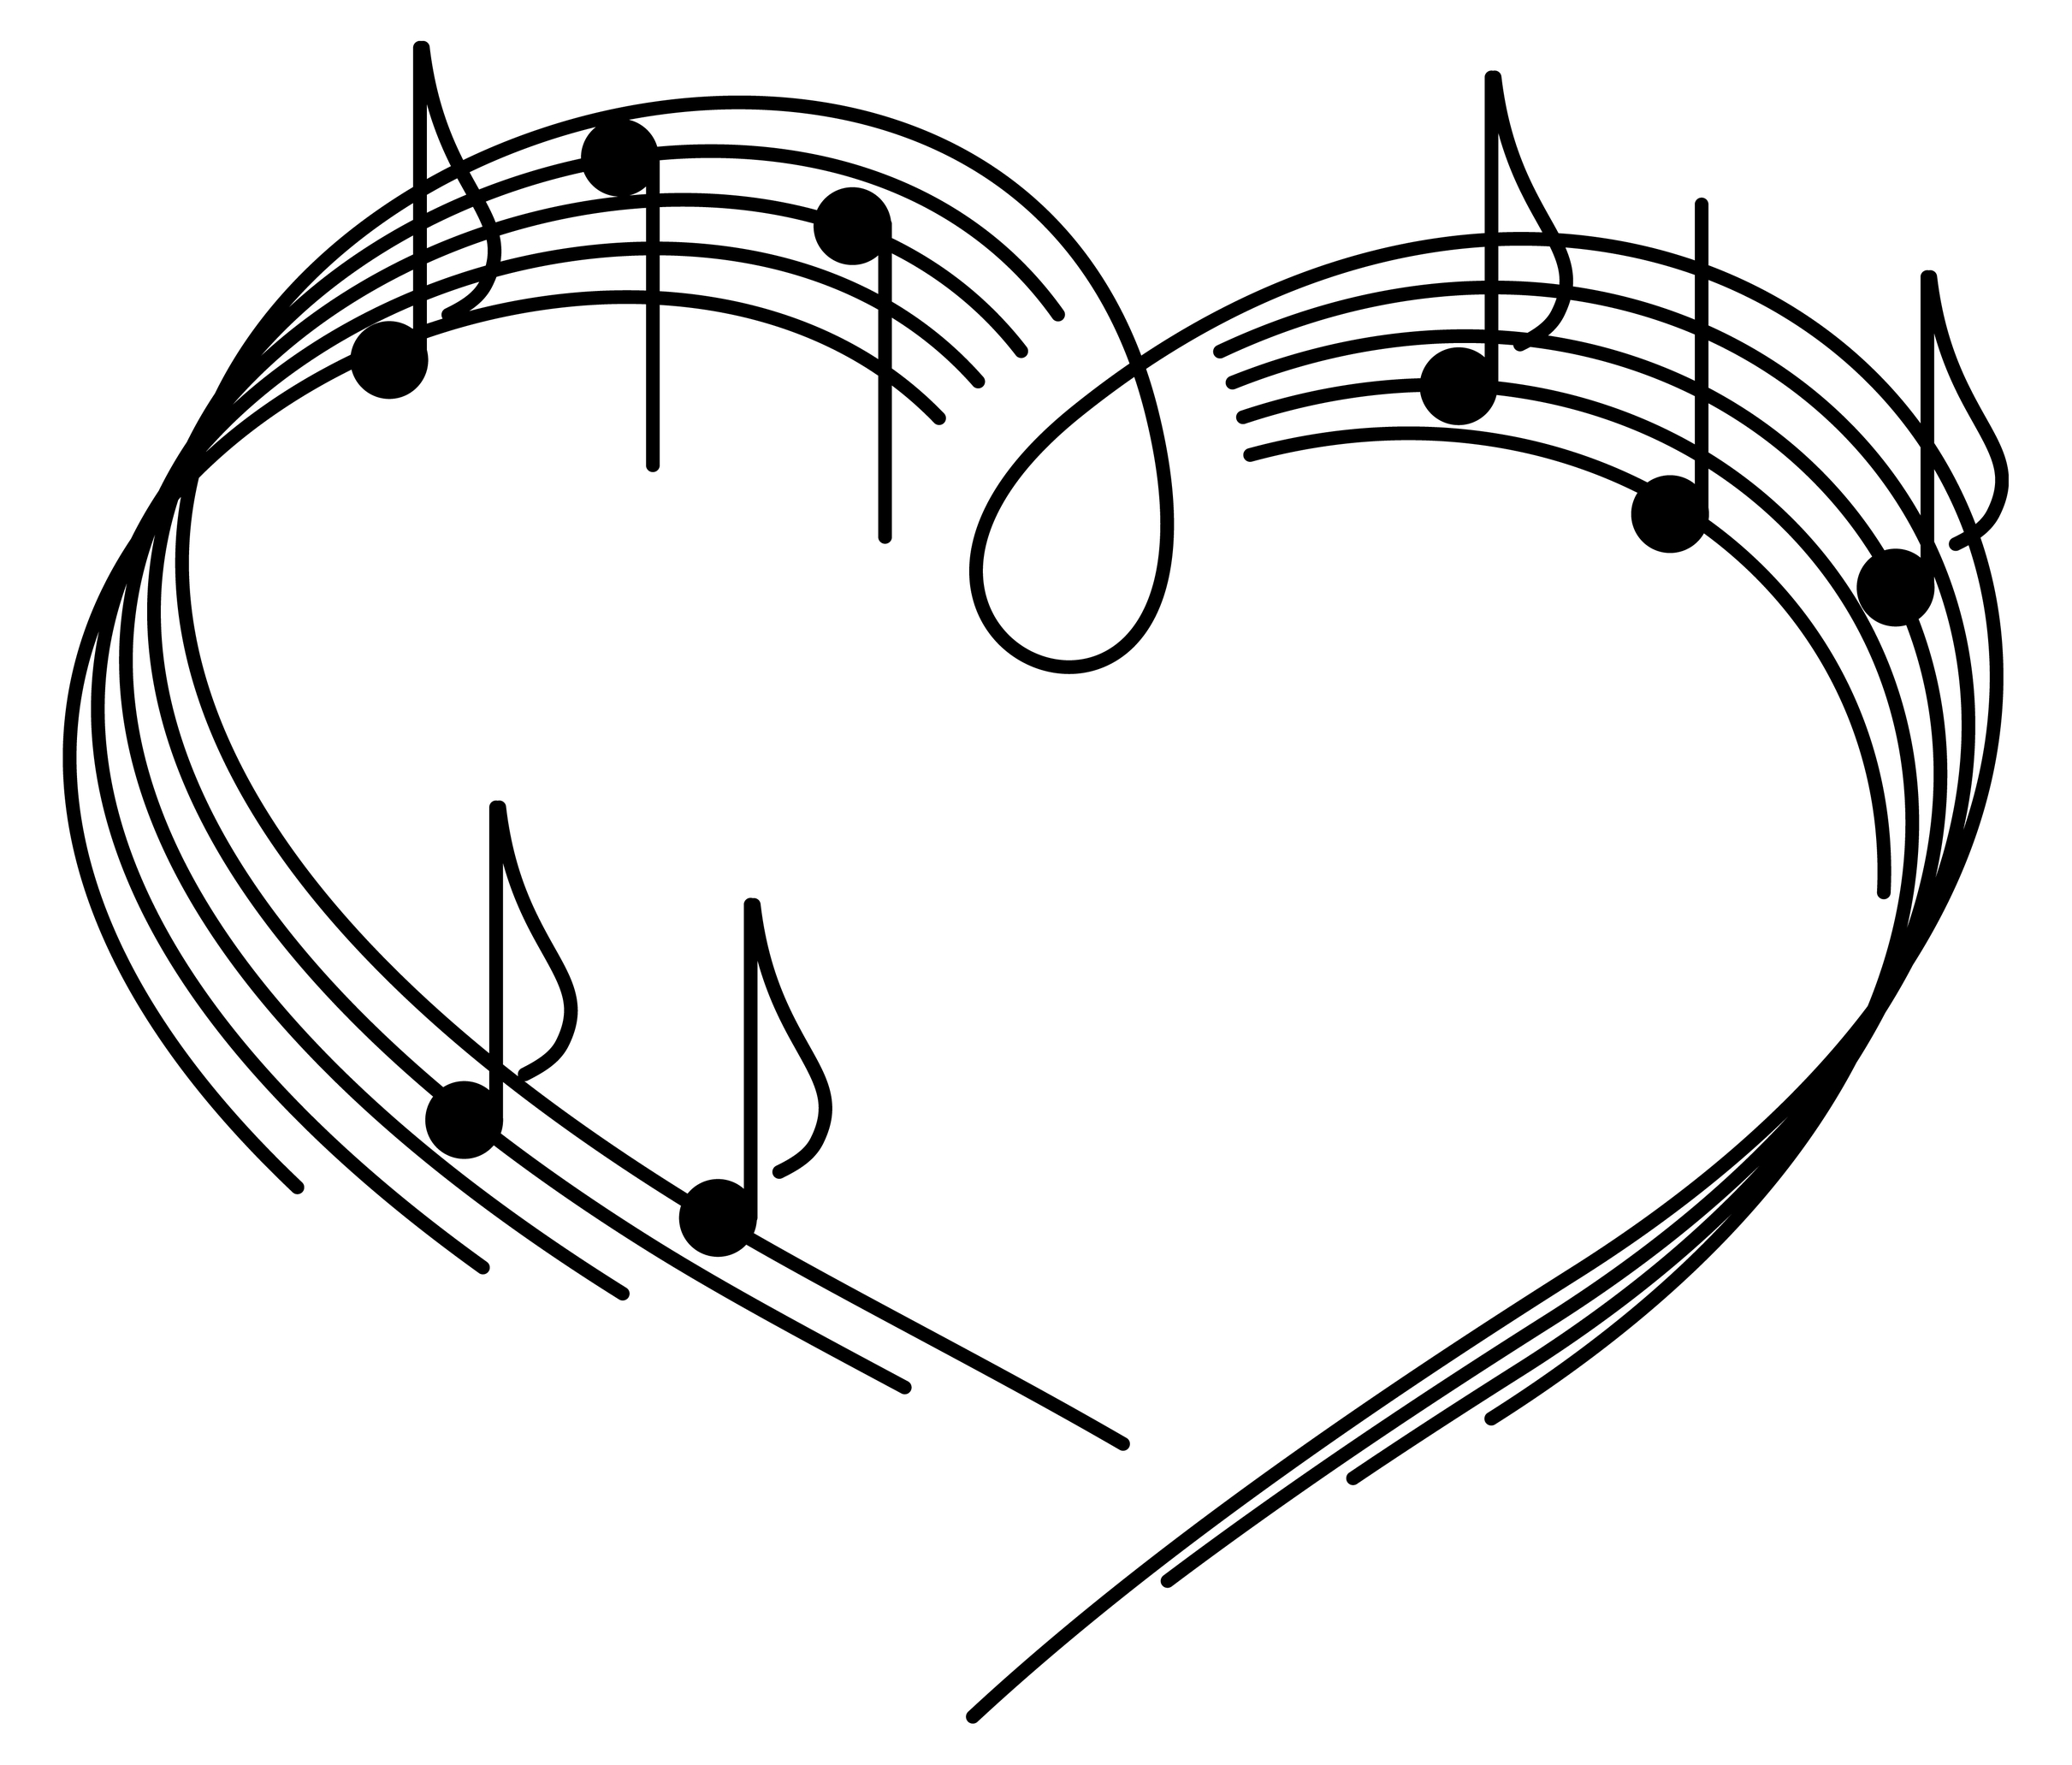 Hearts With Music Staff Clipart.